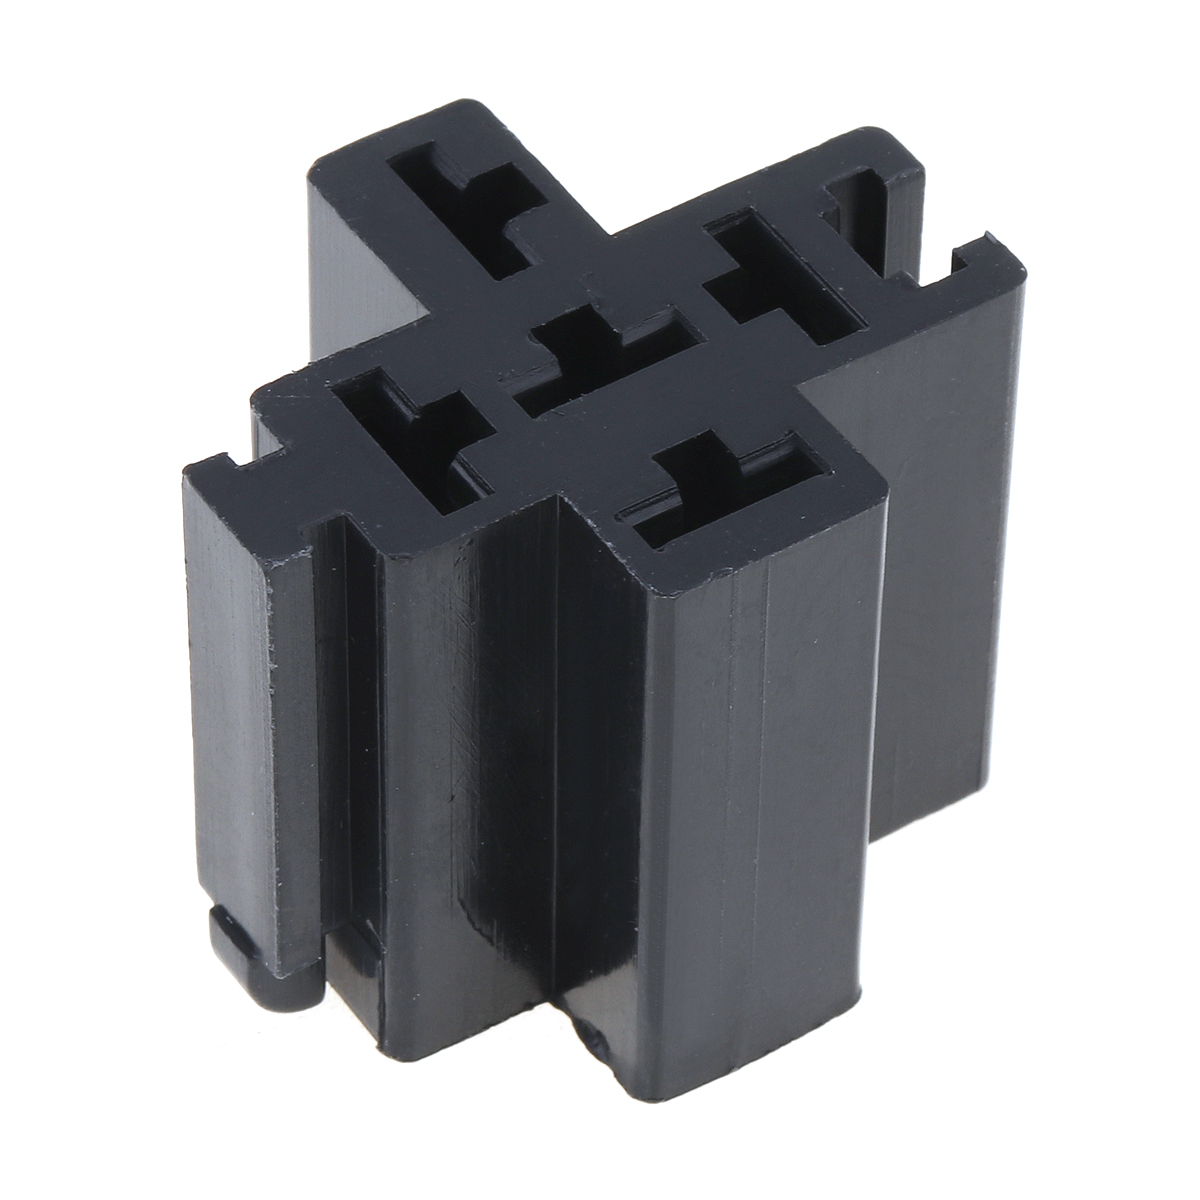 6-3mm-Car-Vehicle-5-Pin-Relay-Socket-Connector-Holder-with-5pcs-Copper-Terminal thumbnail 7